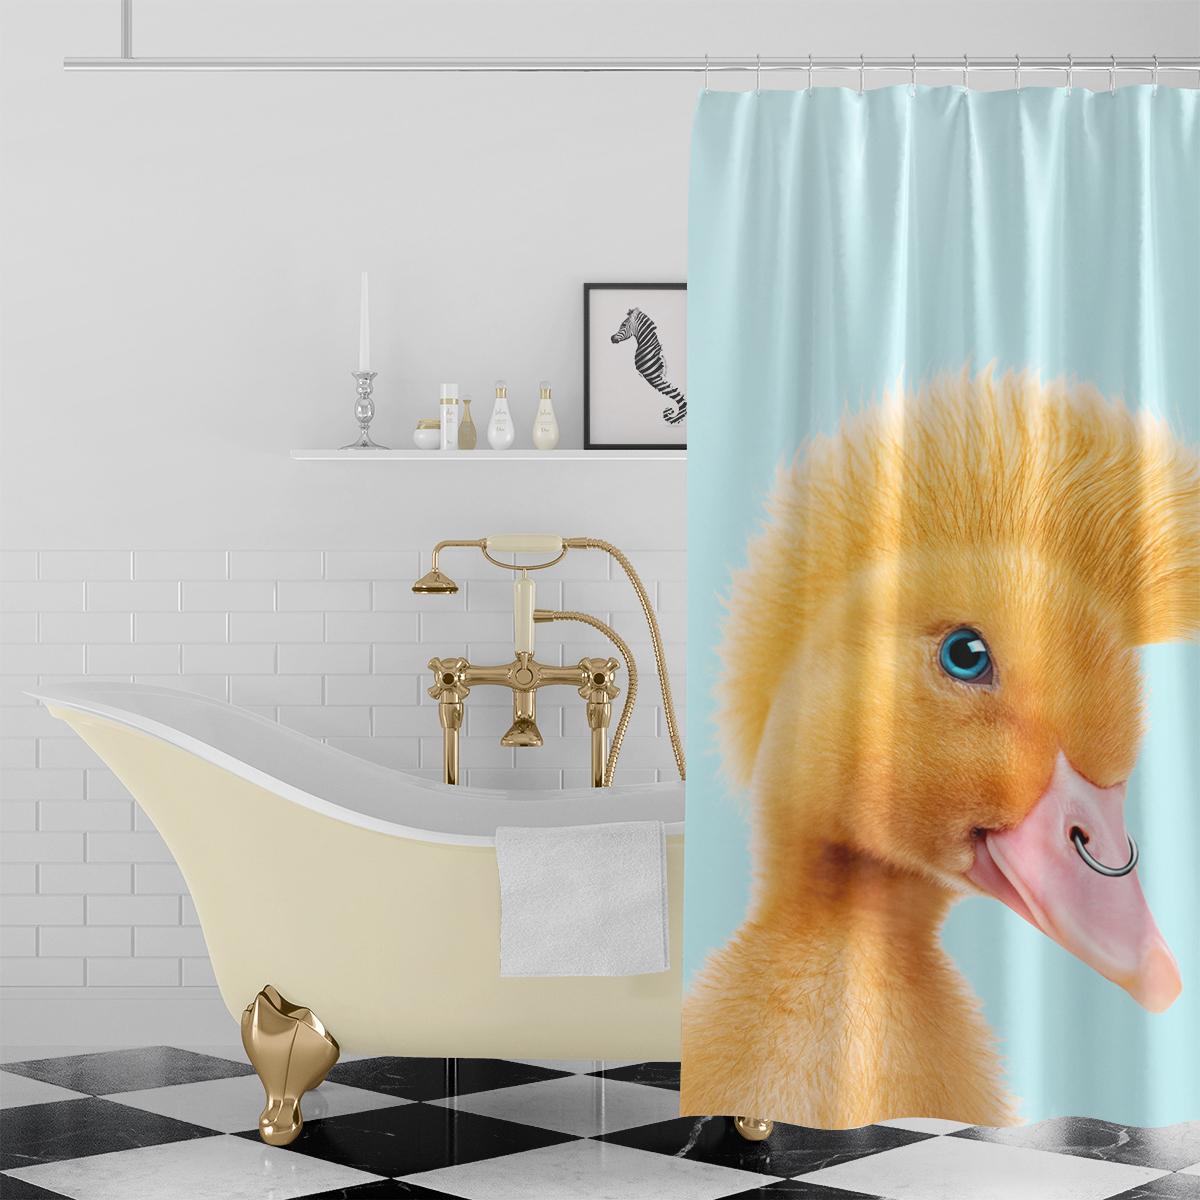 Bathroom - Shower Curtains, Towels, Bath Mats & more